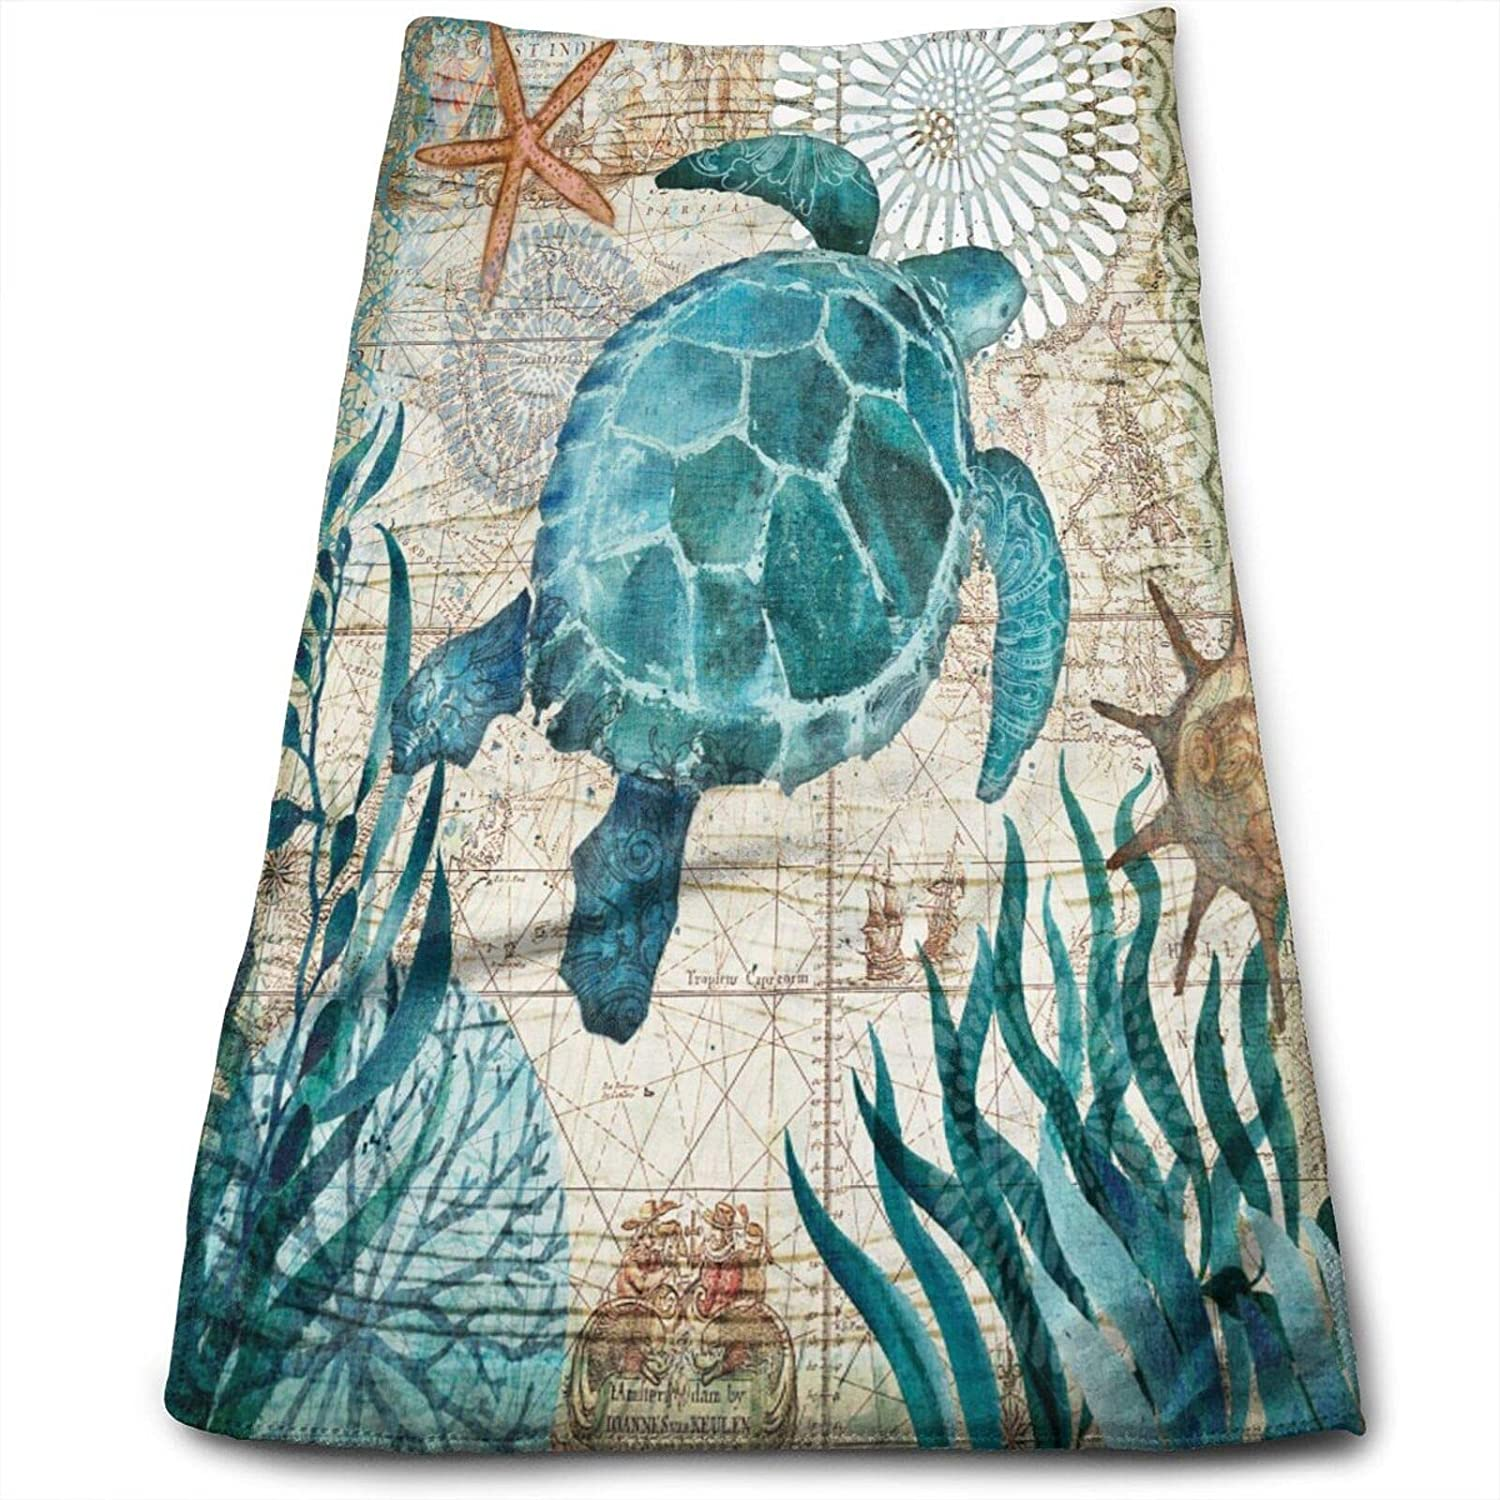 MSGUIDE Vintage Ocean Sea Turtle Starfish Map Hand Towels for Bathroom Clearance Decor Face Towels Microfiber Towels Soft Fingertip Towel for Gym Yoga Spa Pool Sport Hotel